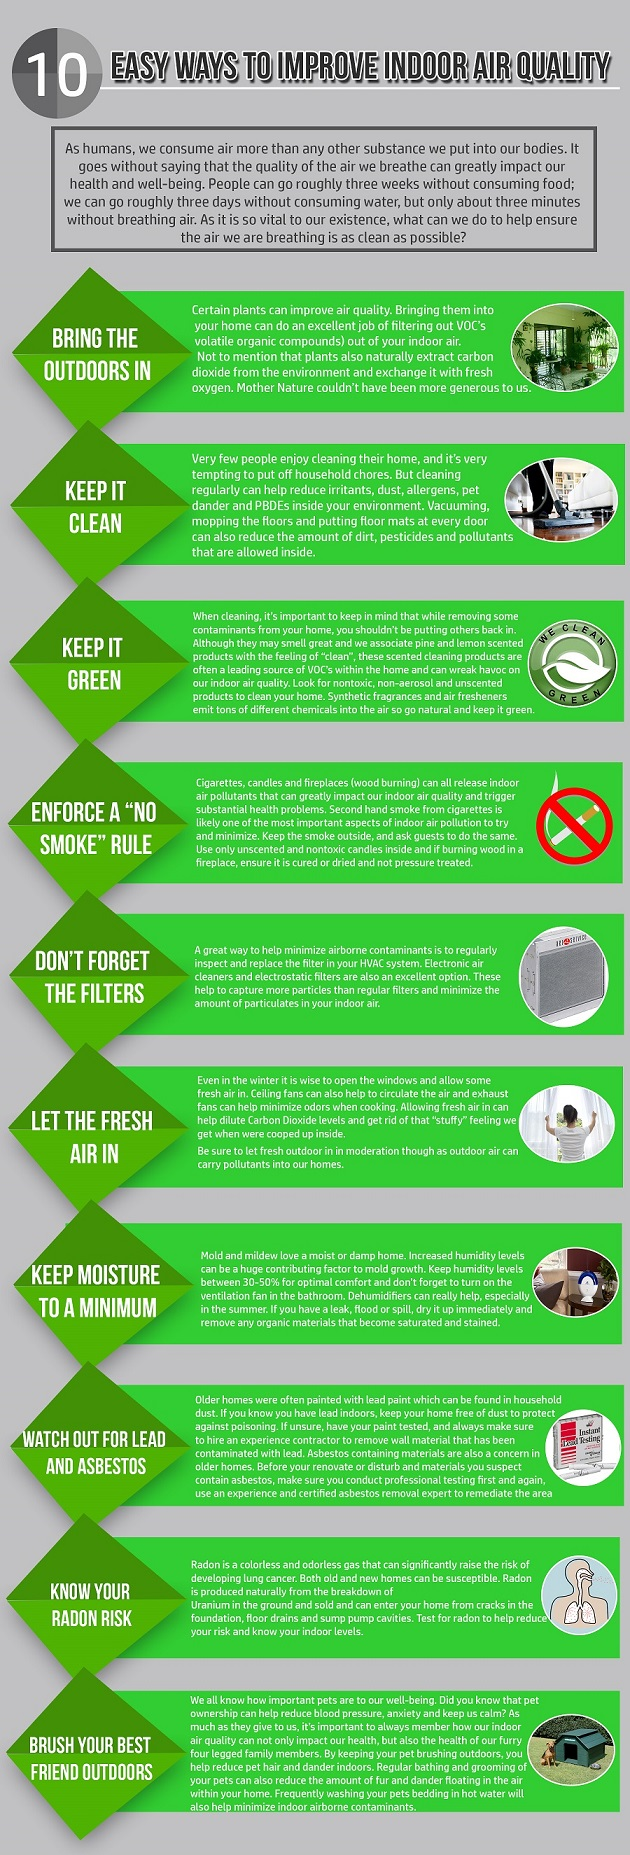 10 Easy Ways To Improve Indoor Air Quality